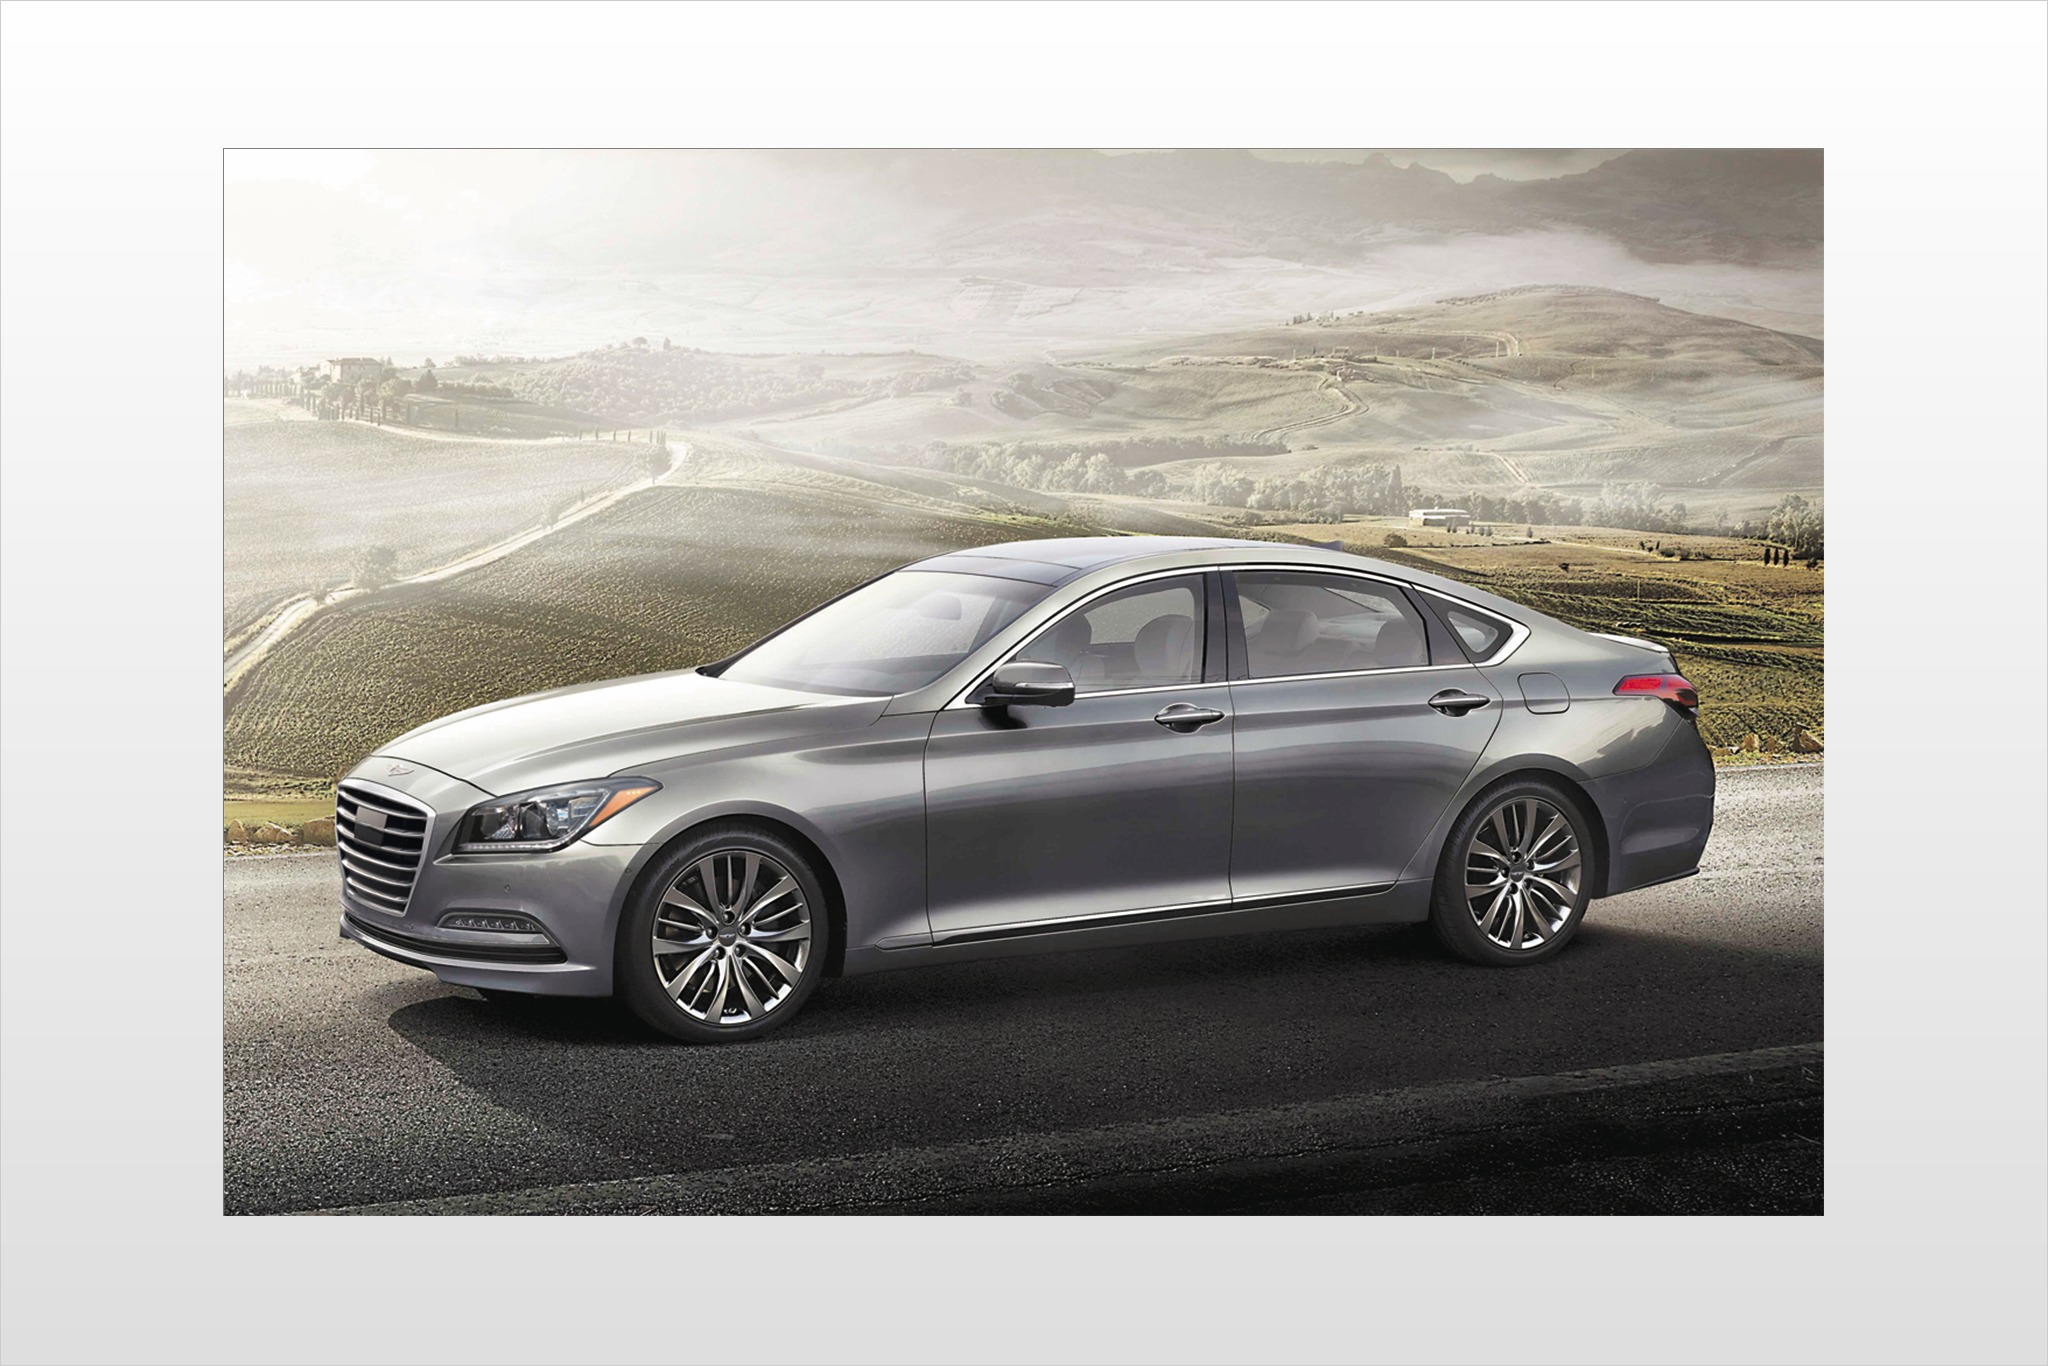 2017 genesis g80 sedan 50 ultimate fq oem 1 2048